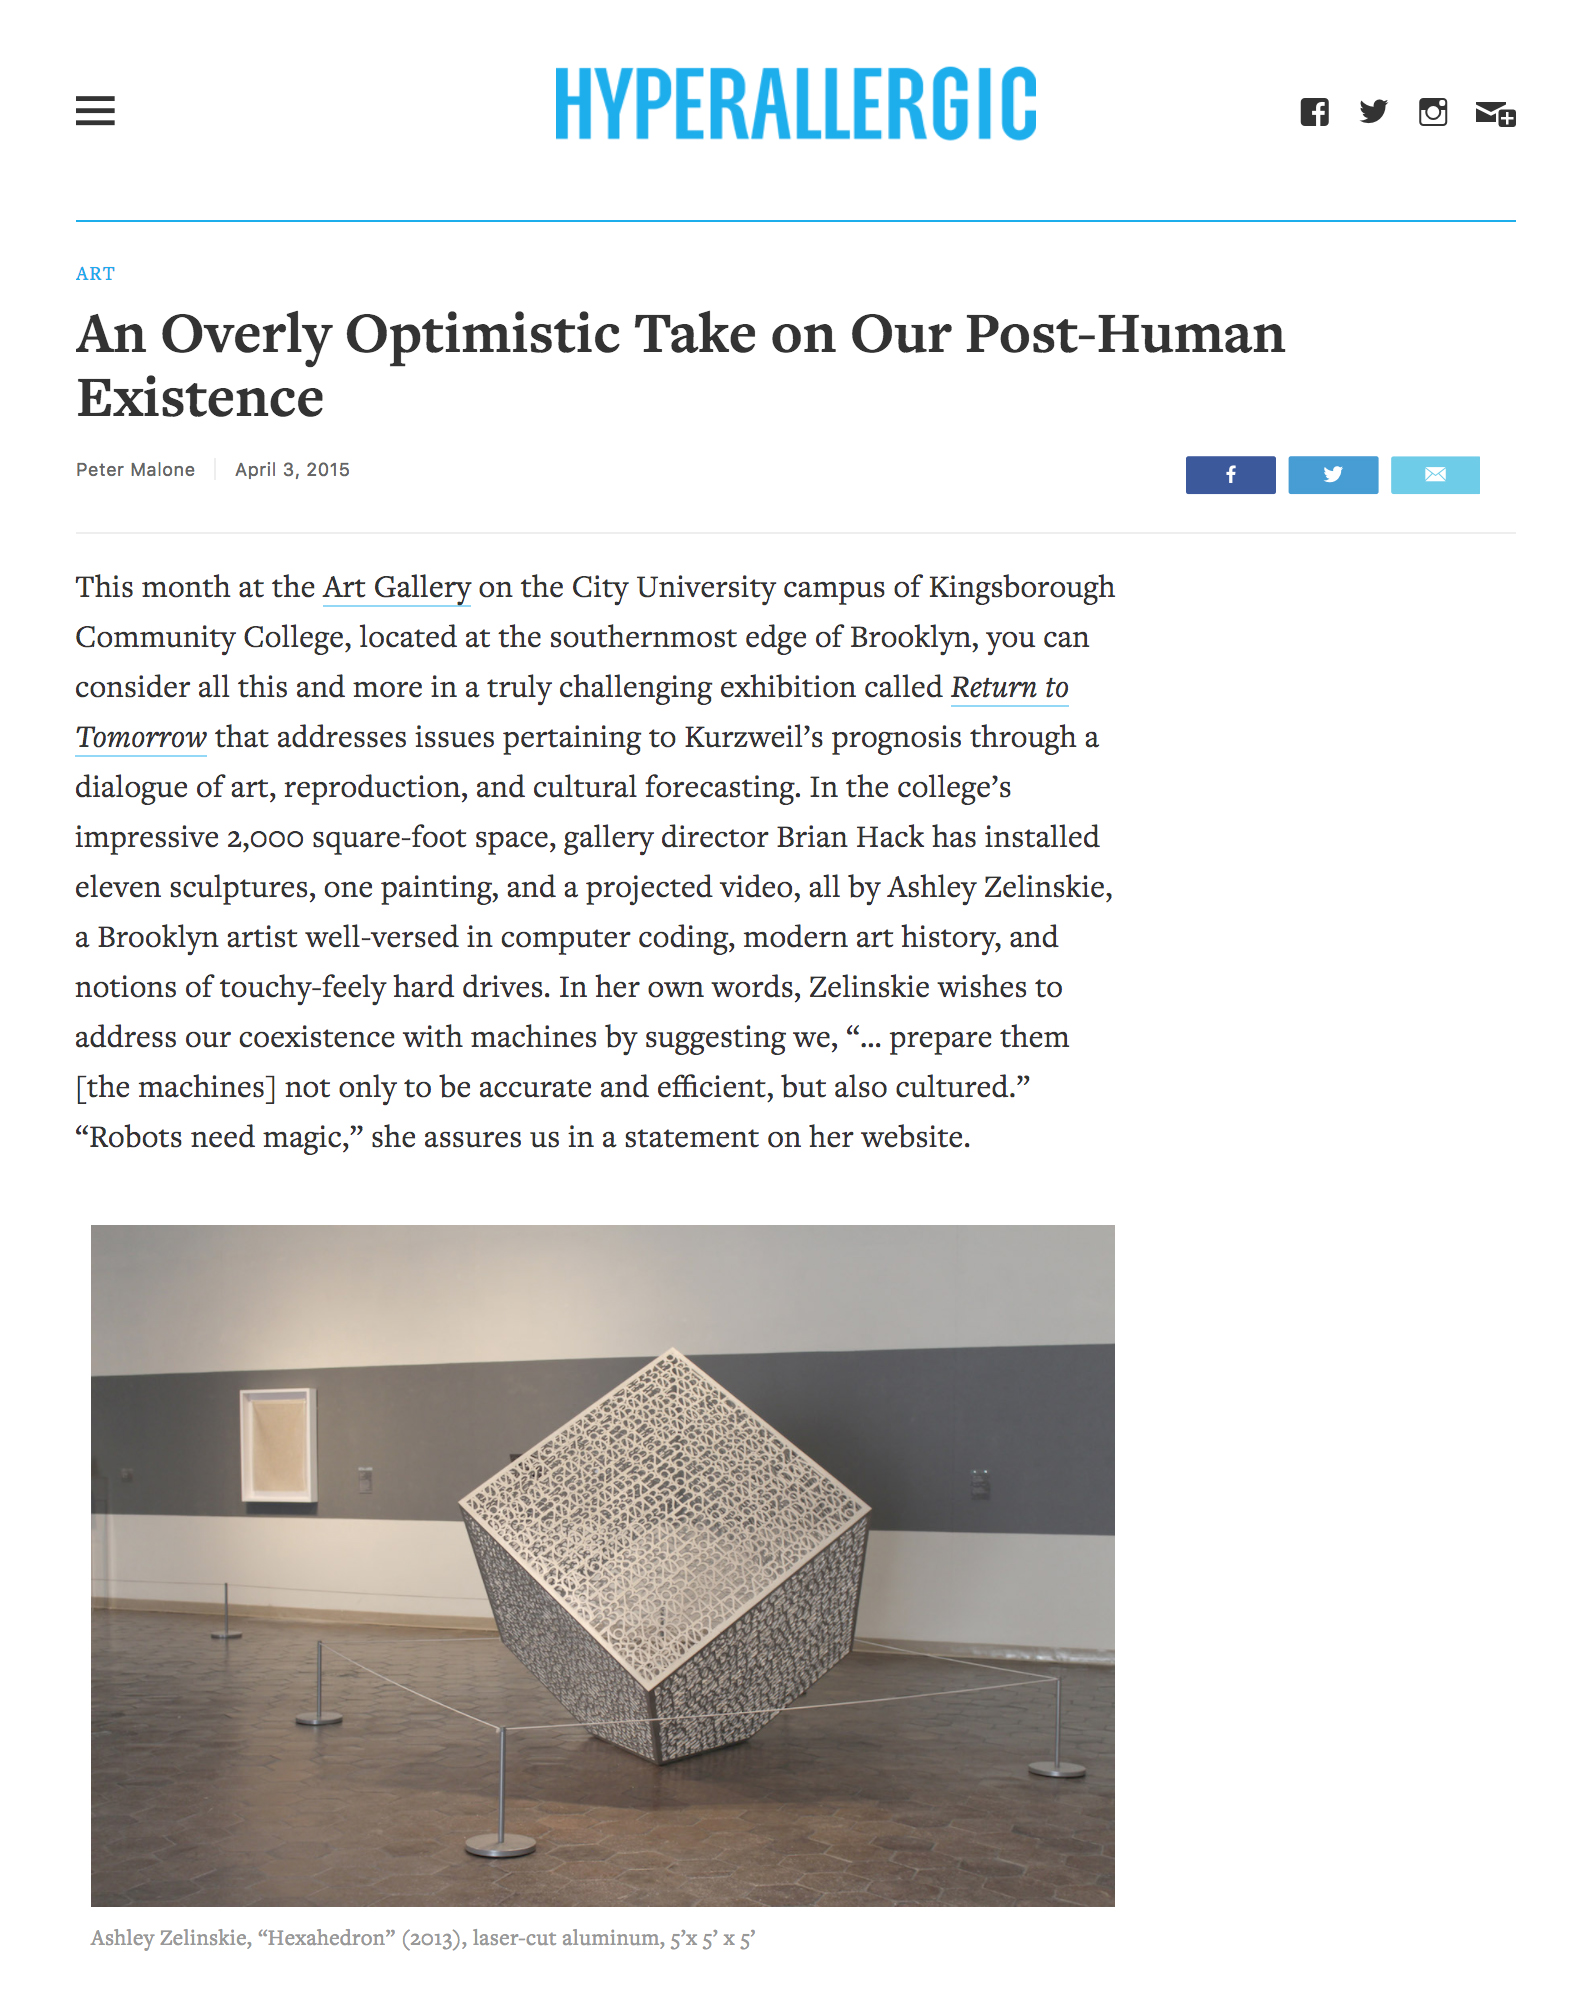 An Overly Optimistic Take on Our Post-Human Existence.jpg